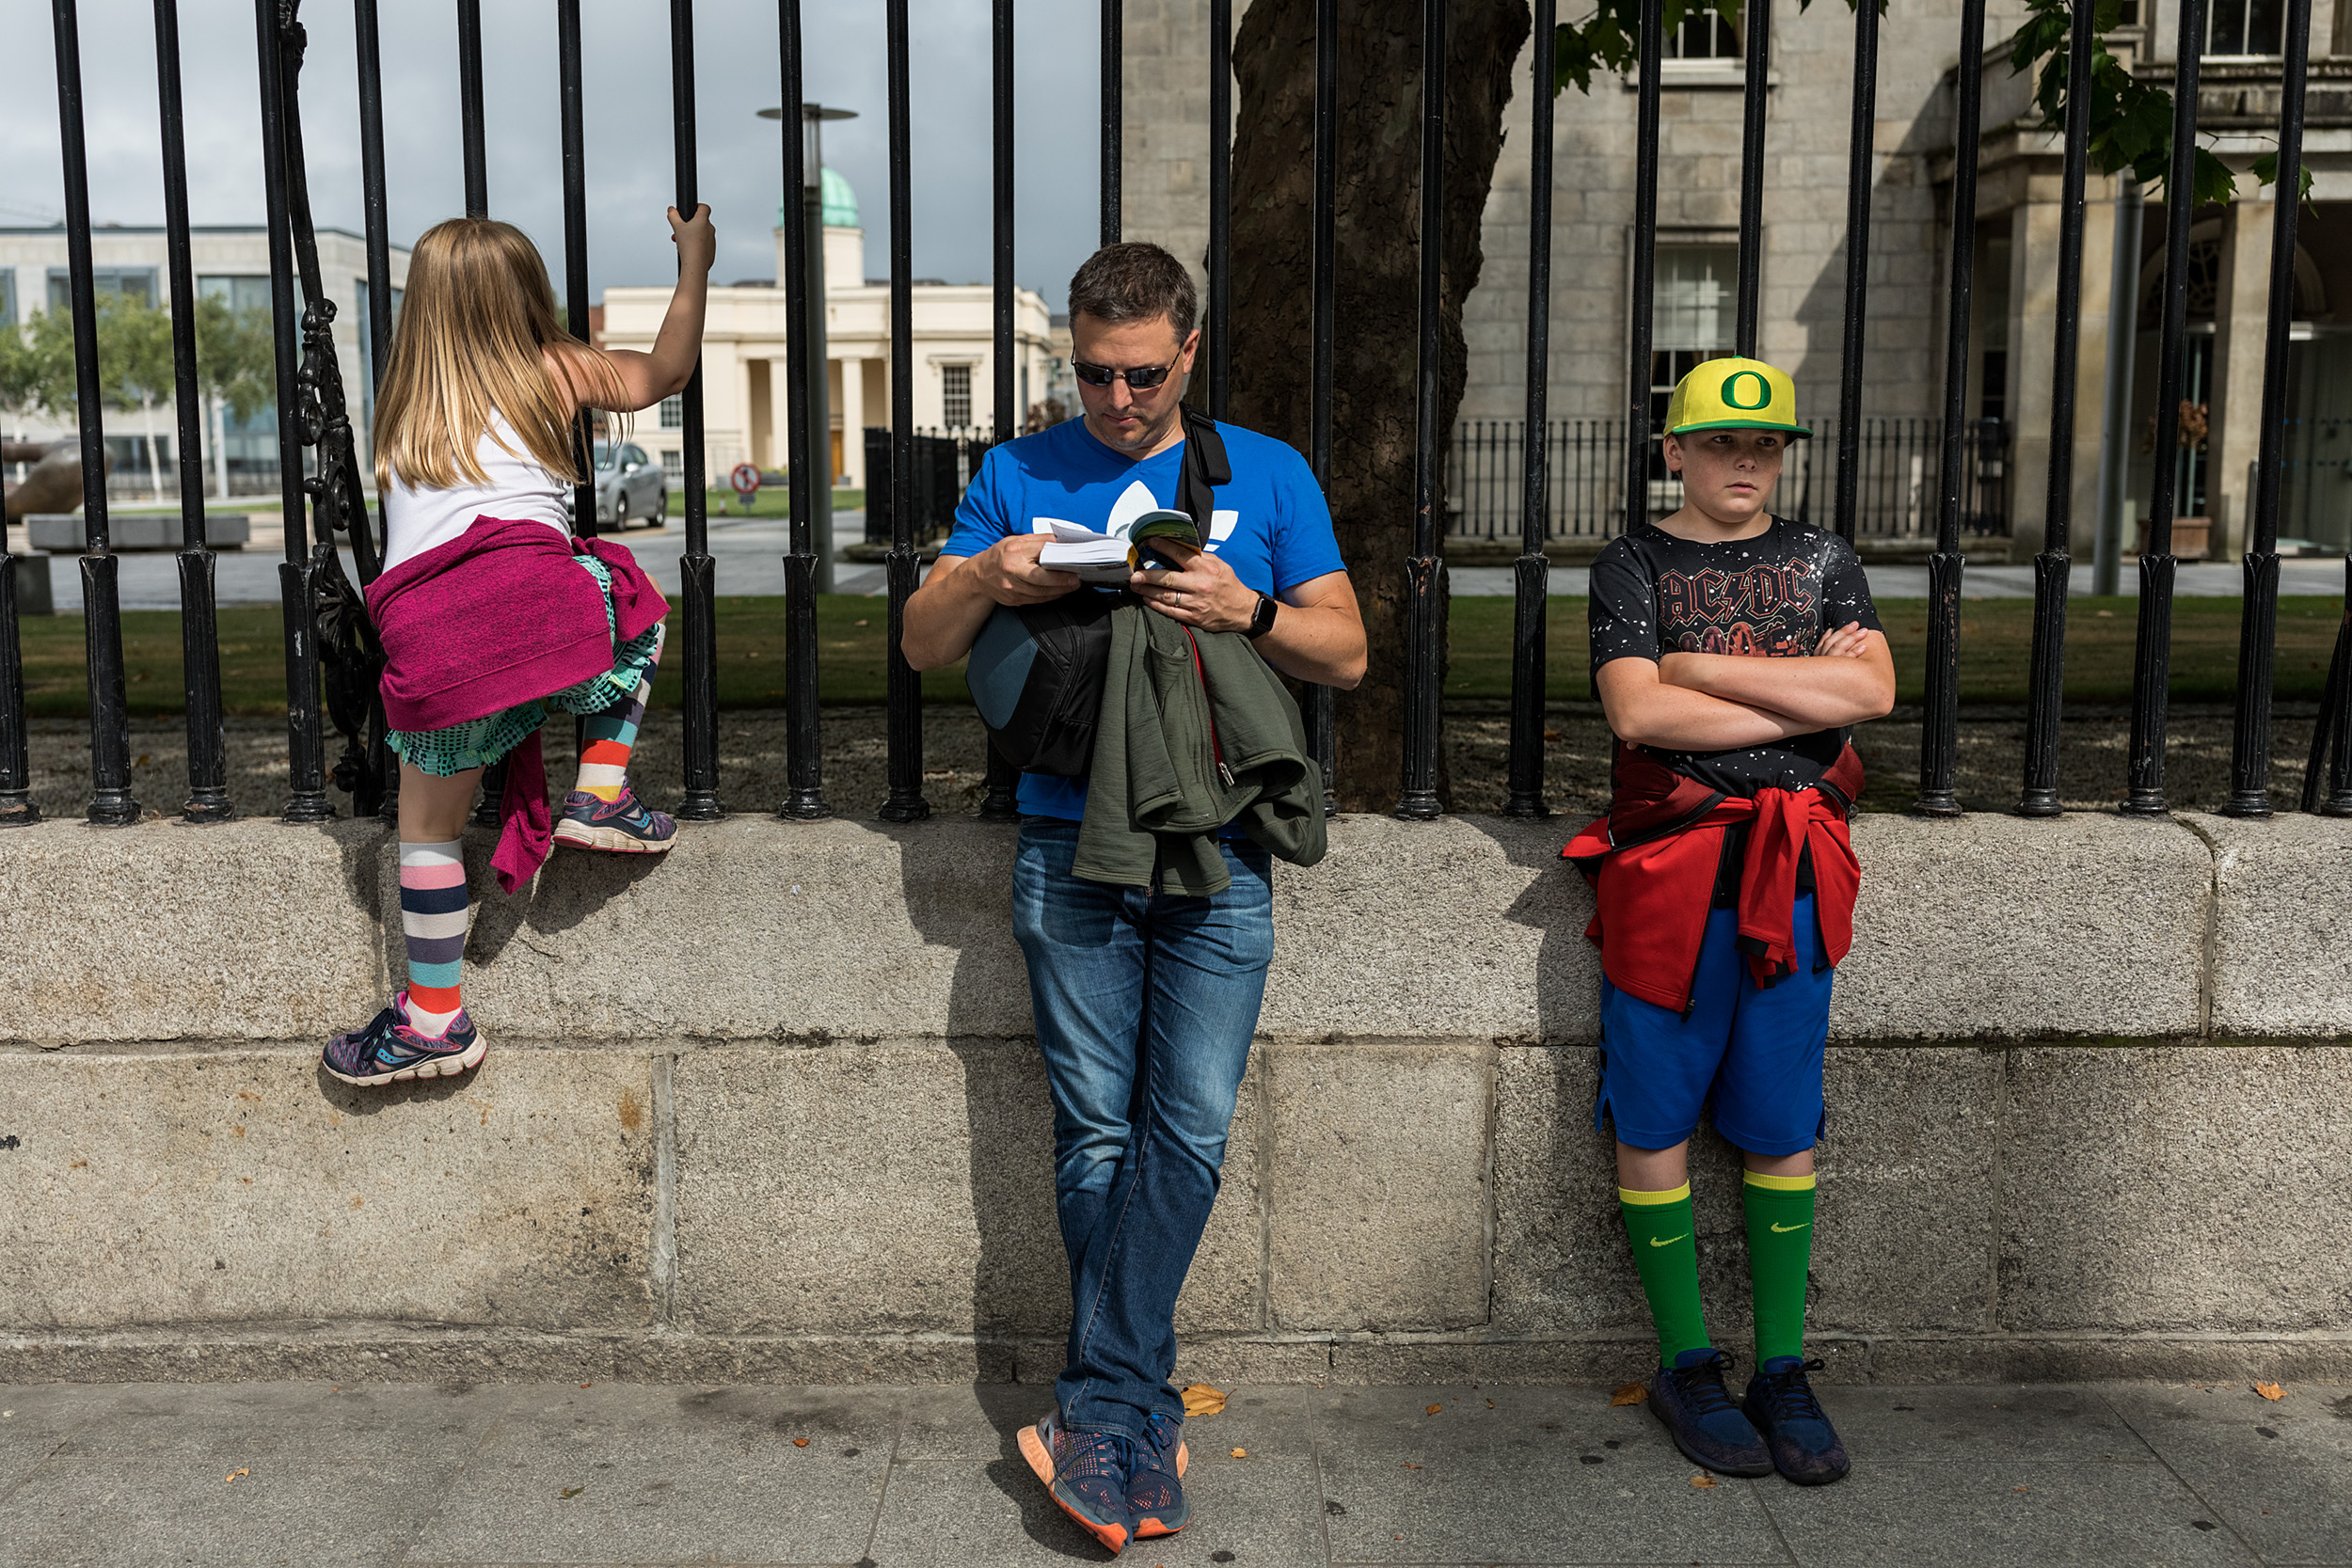 A dad looks through a tour book while his kids are bored out of their minds in Dublin, Ireland